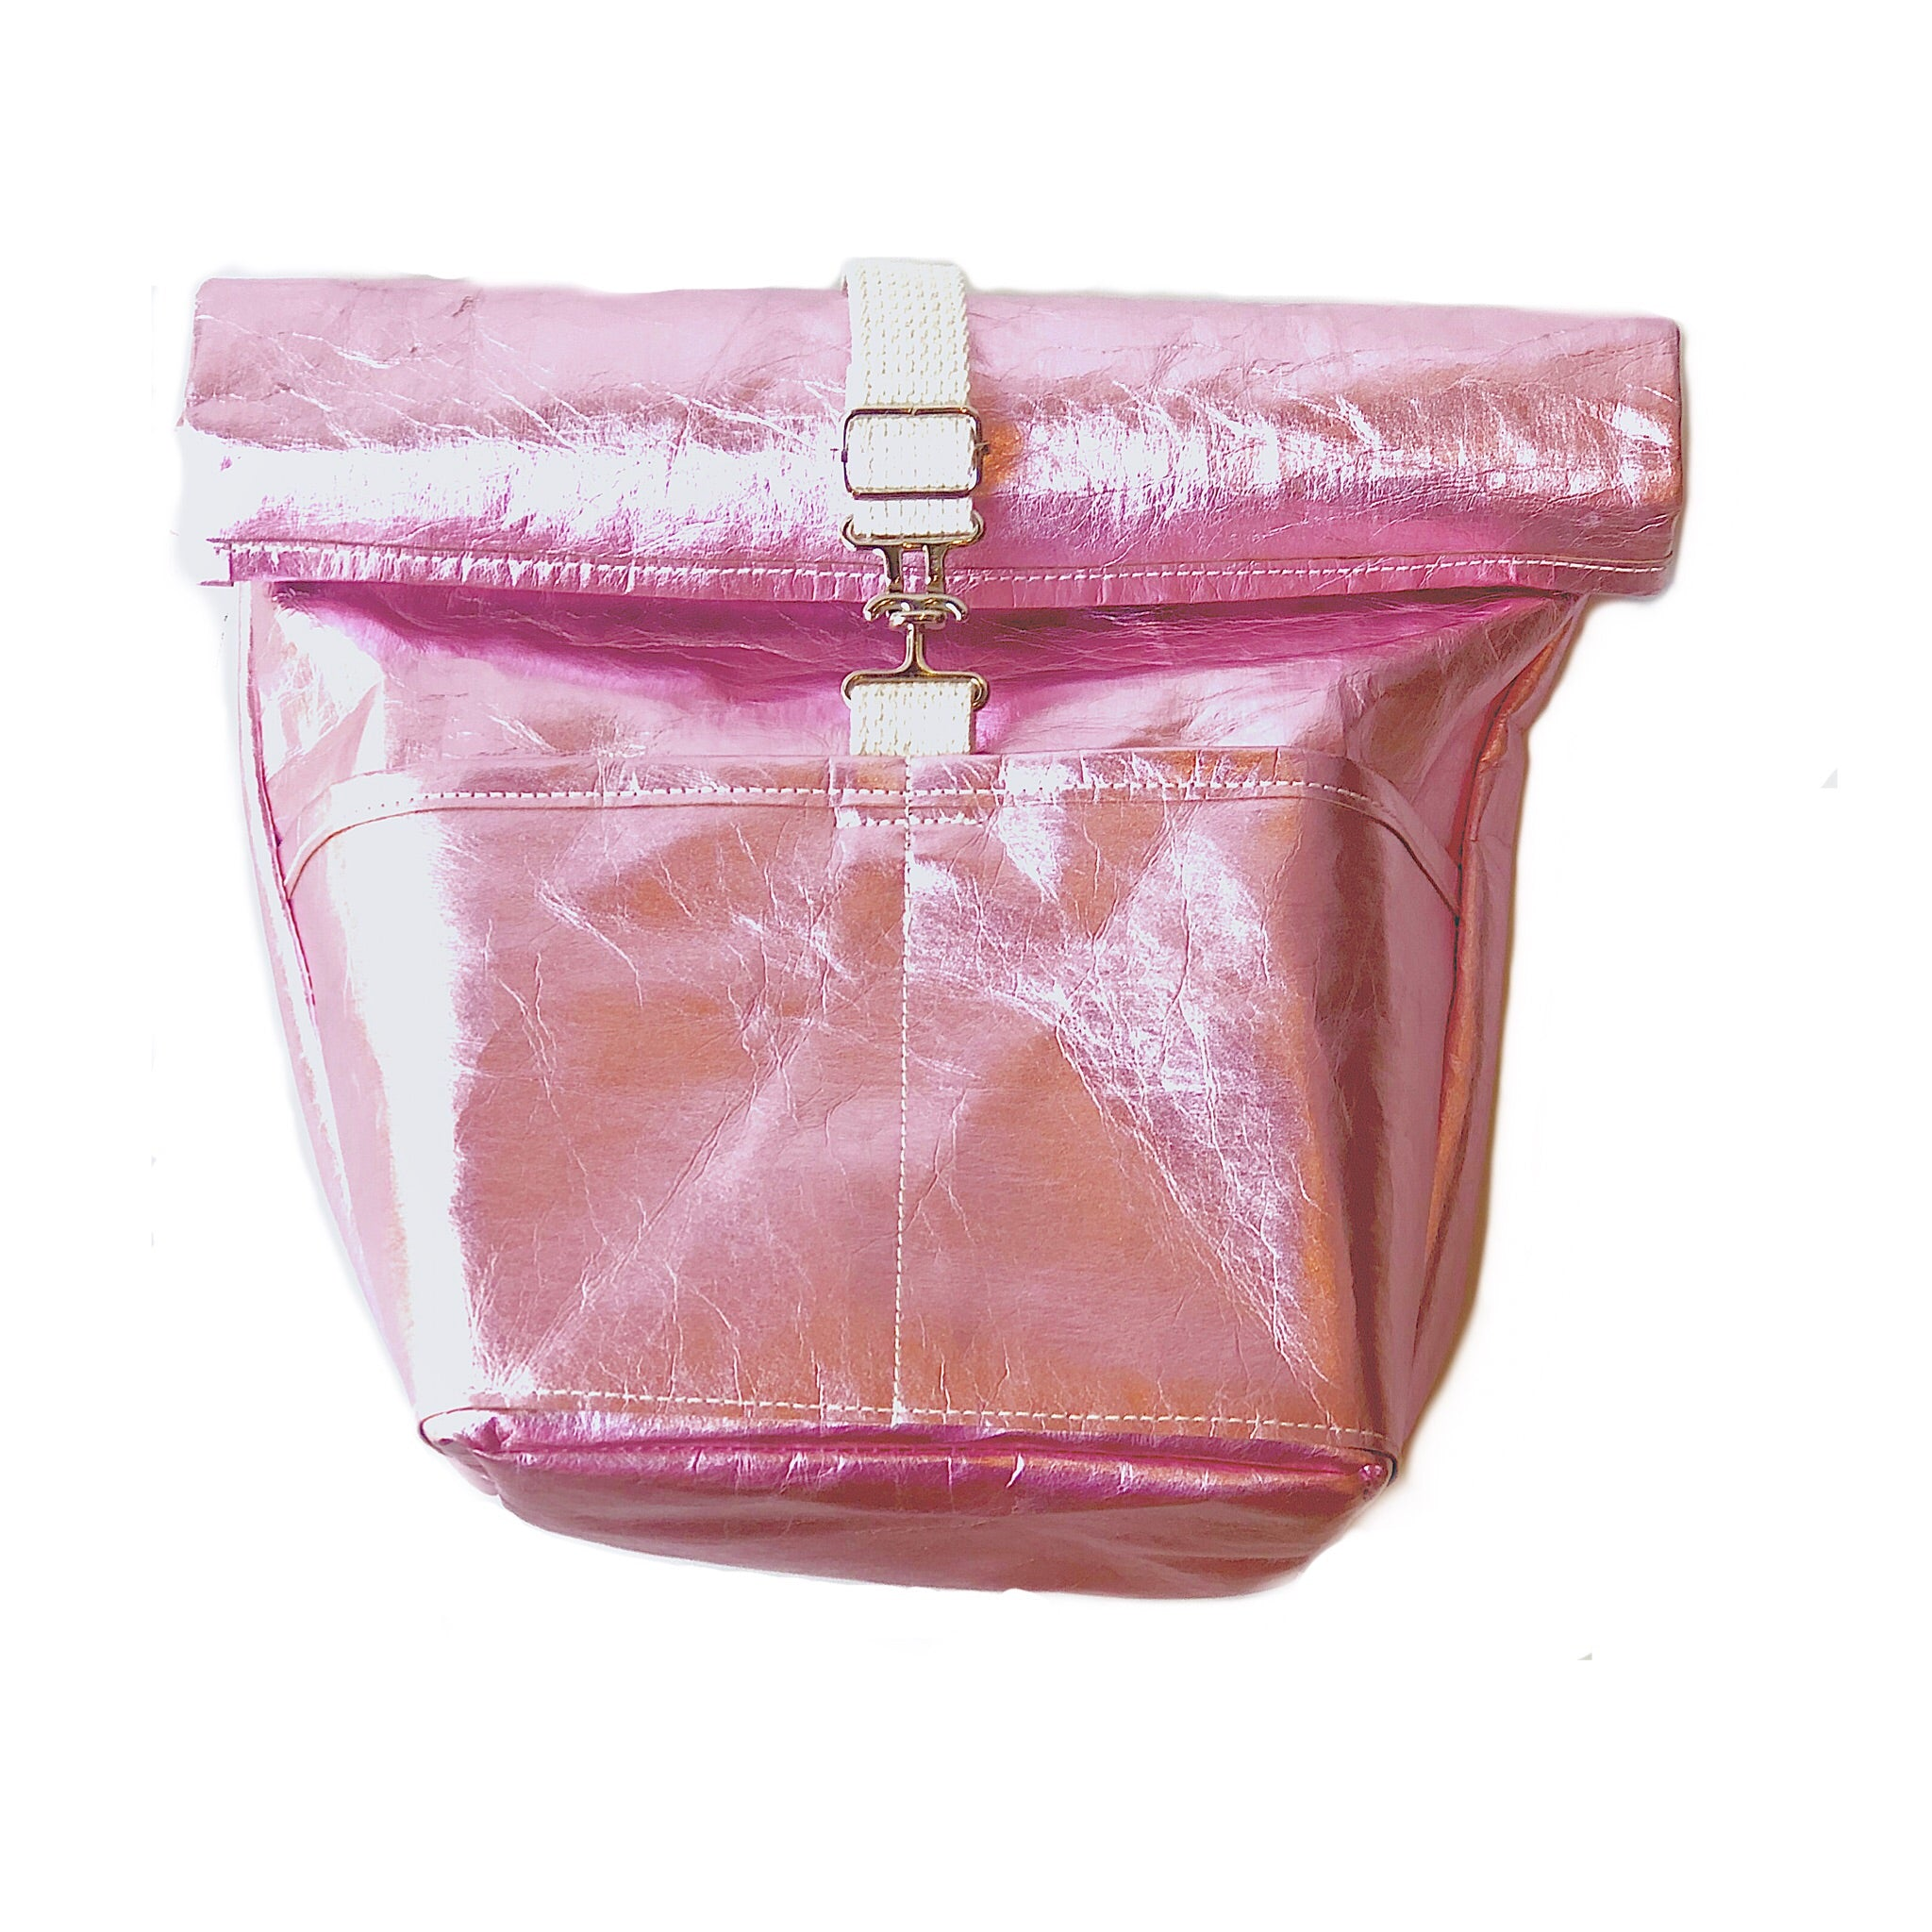 Urbana Sac Mini Backpack in Black or Metallic Pink